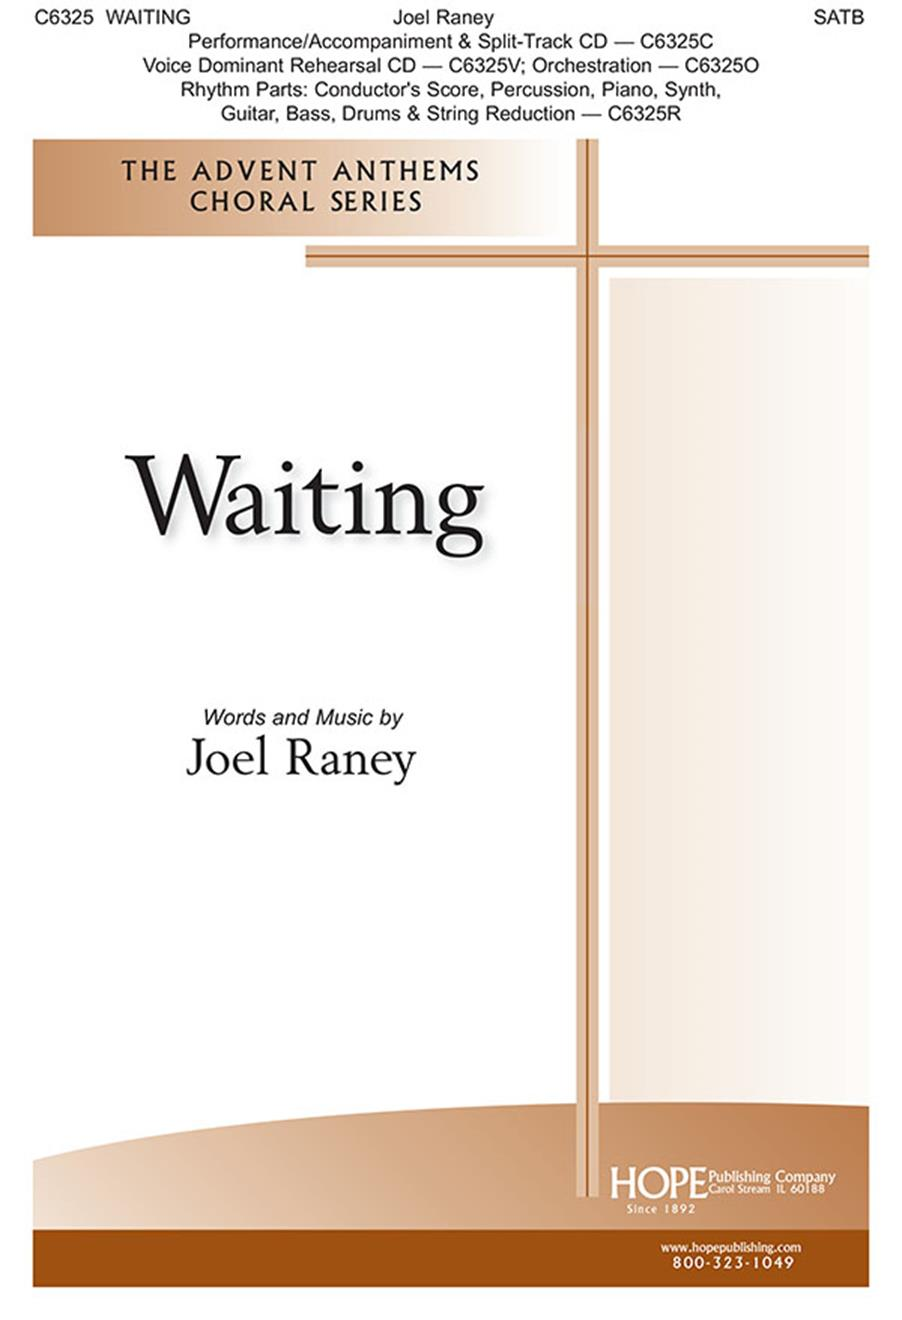 Waiting - SATB Cover Image